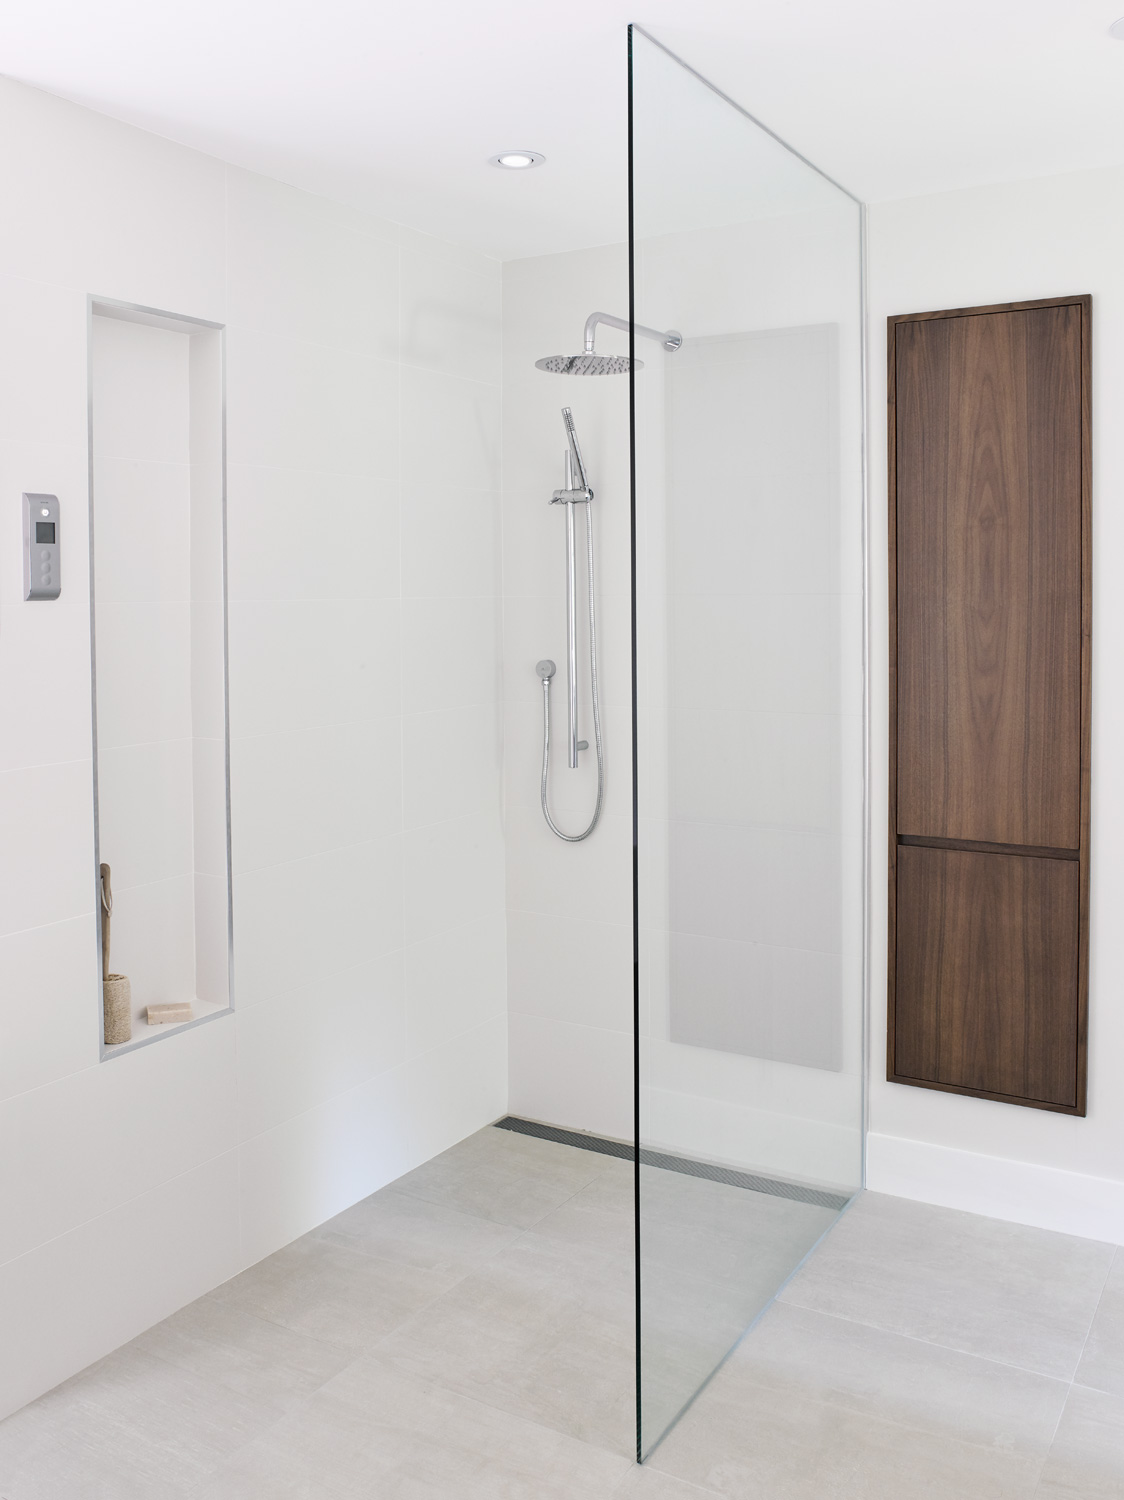 Curbless Shower with Linear Drain